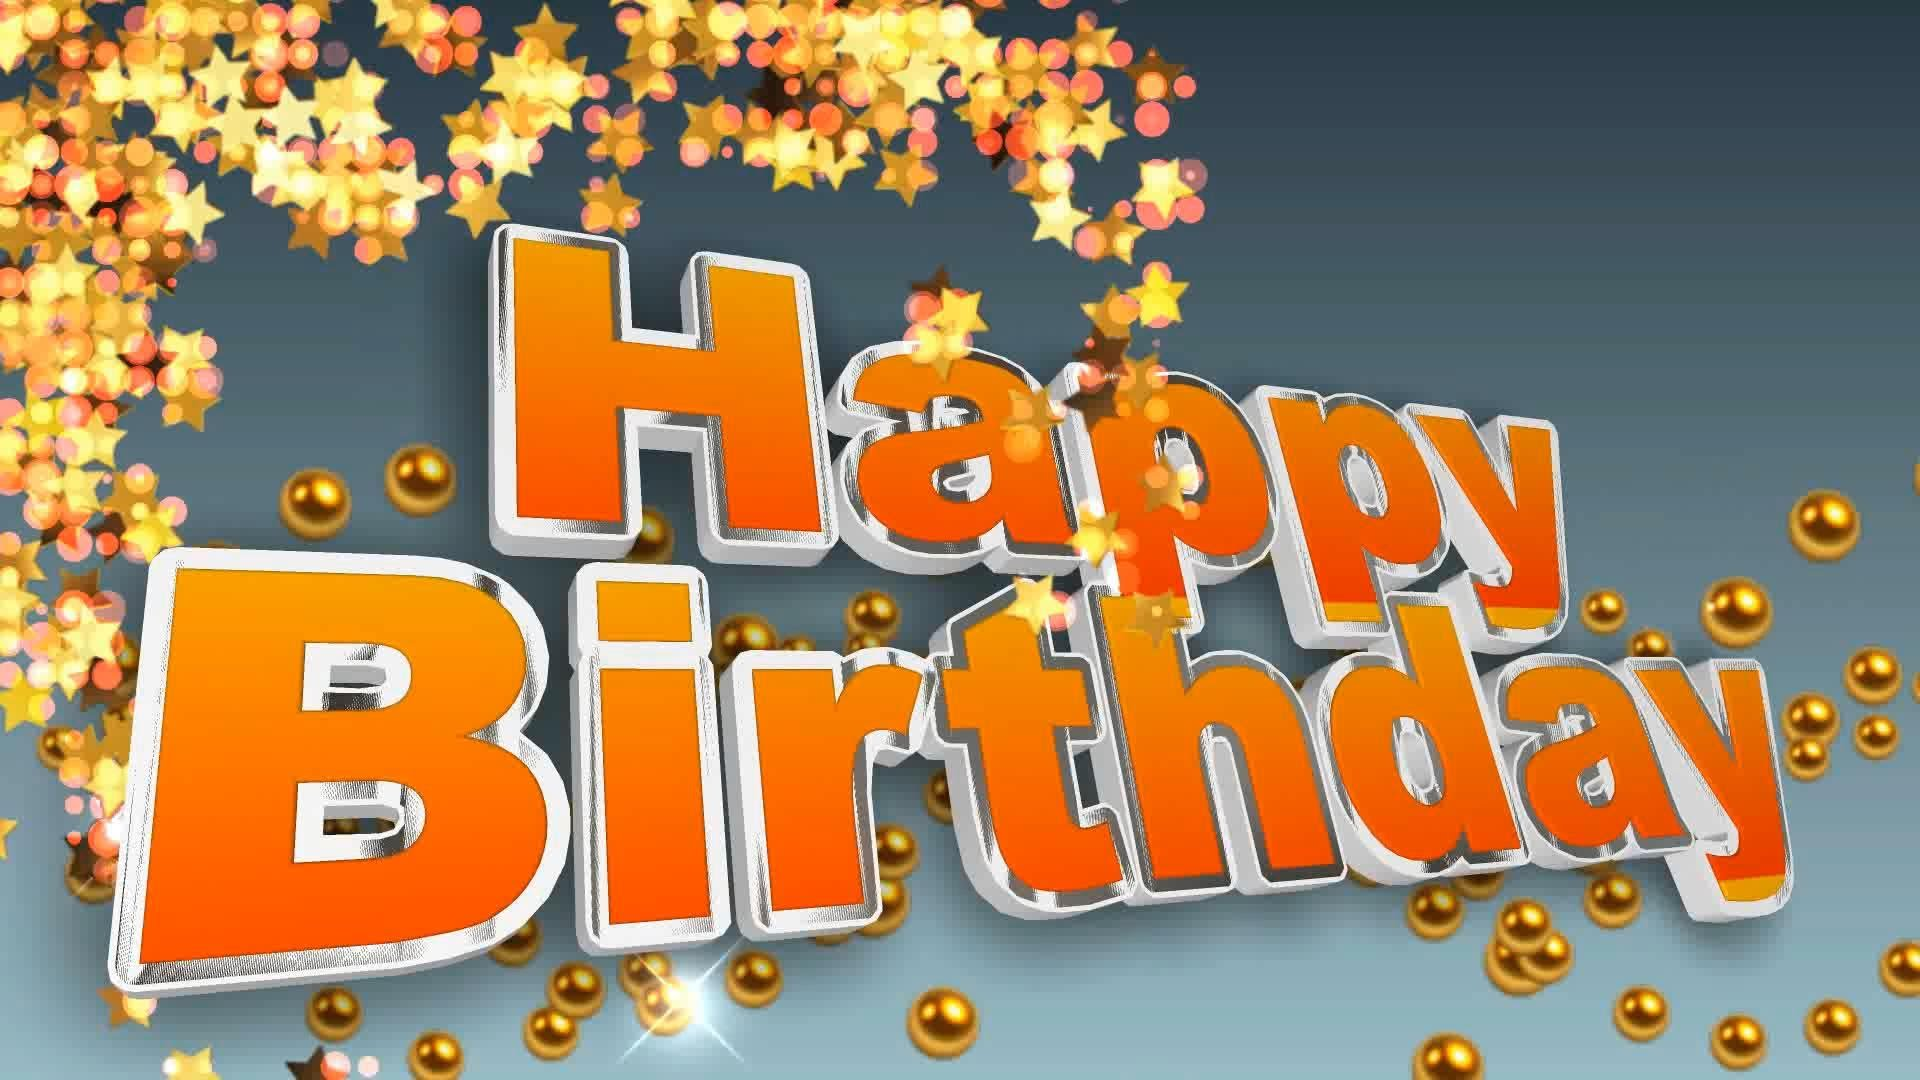 hd happy birthday wishes wallpapers ; happy-birthday-images-33